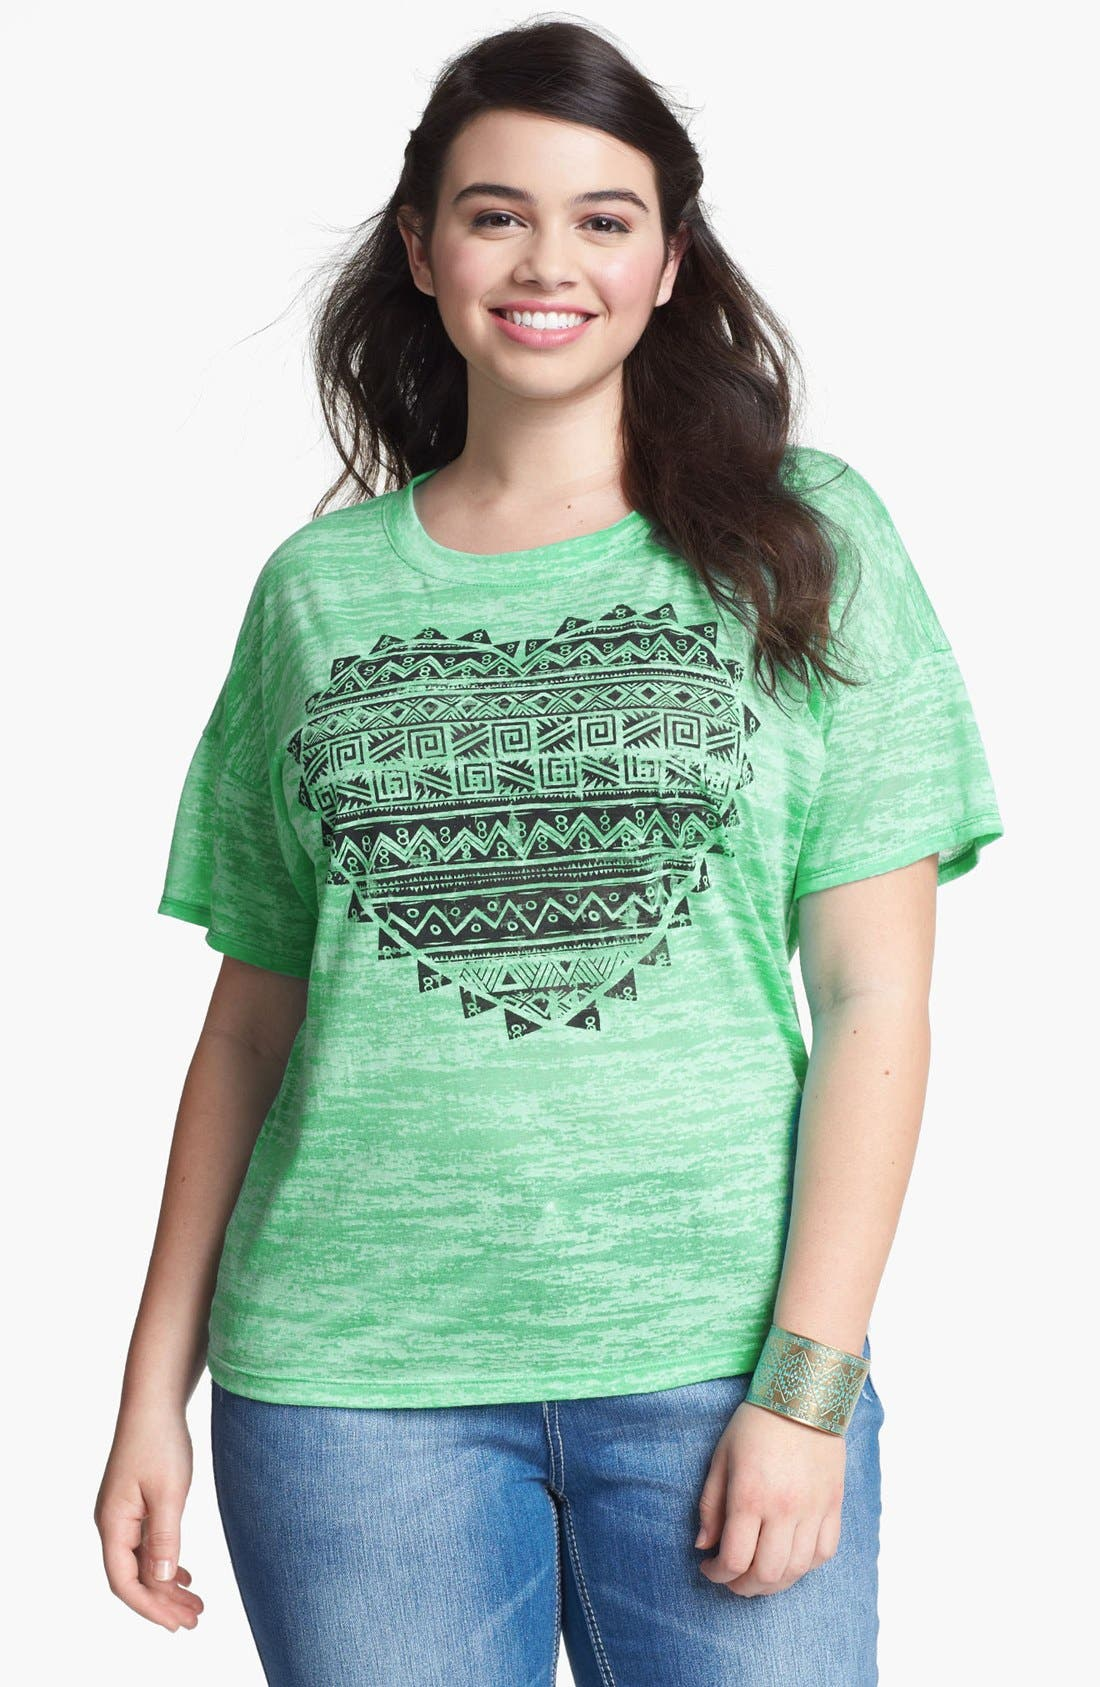 Alternate Image 1 Selected - Painted Threads 'Heart' Graphic Tee (Juniors Plus)